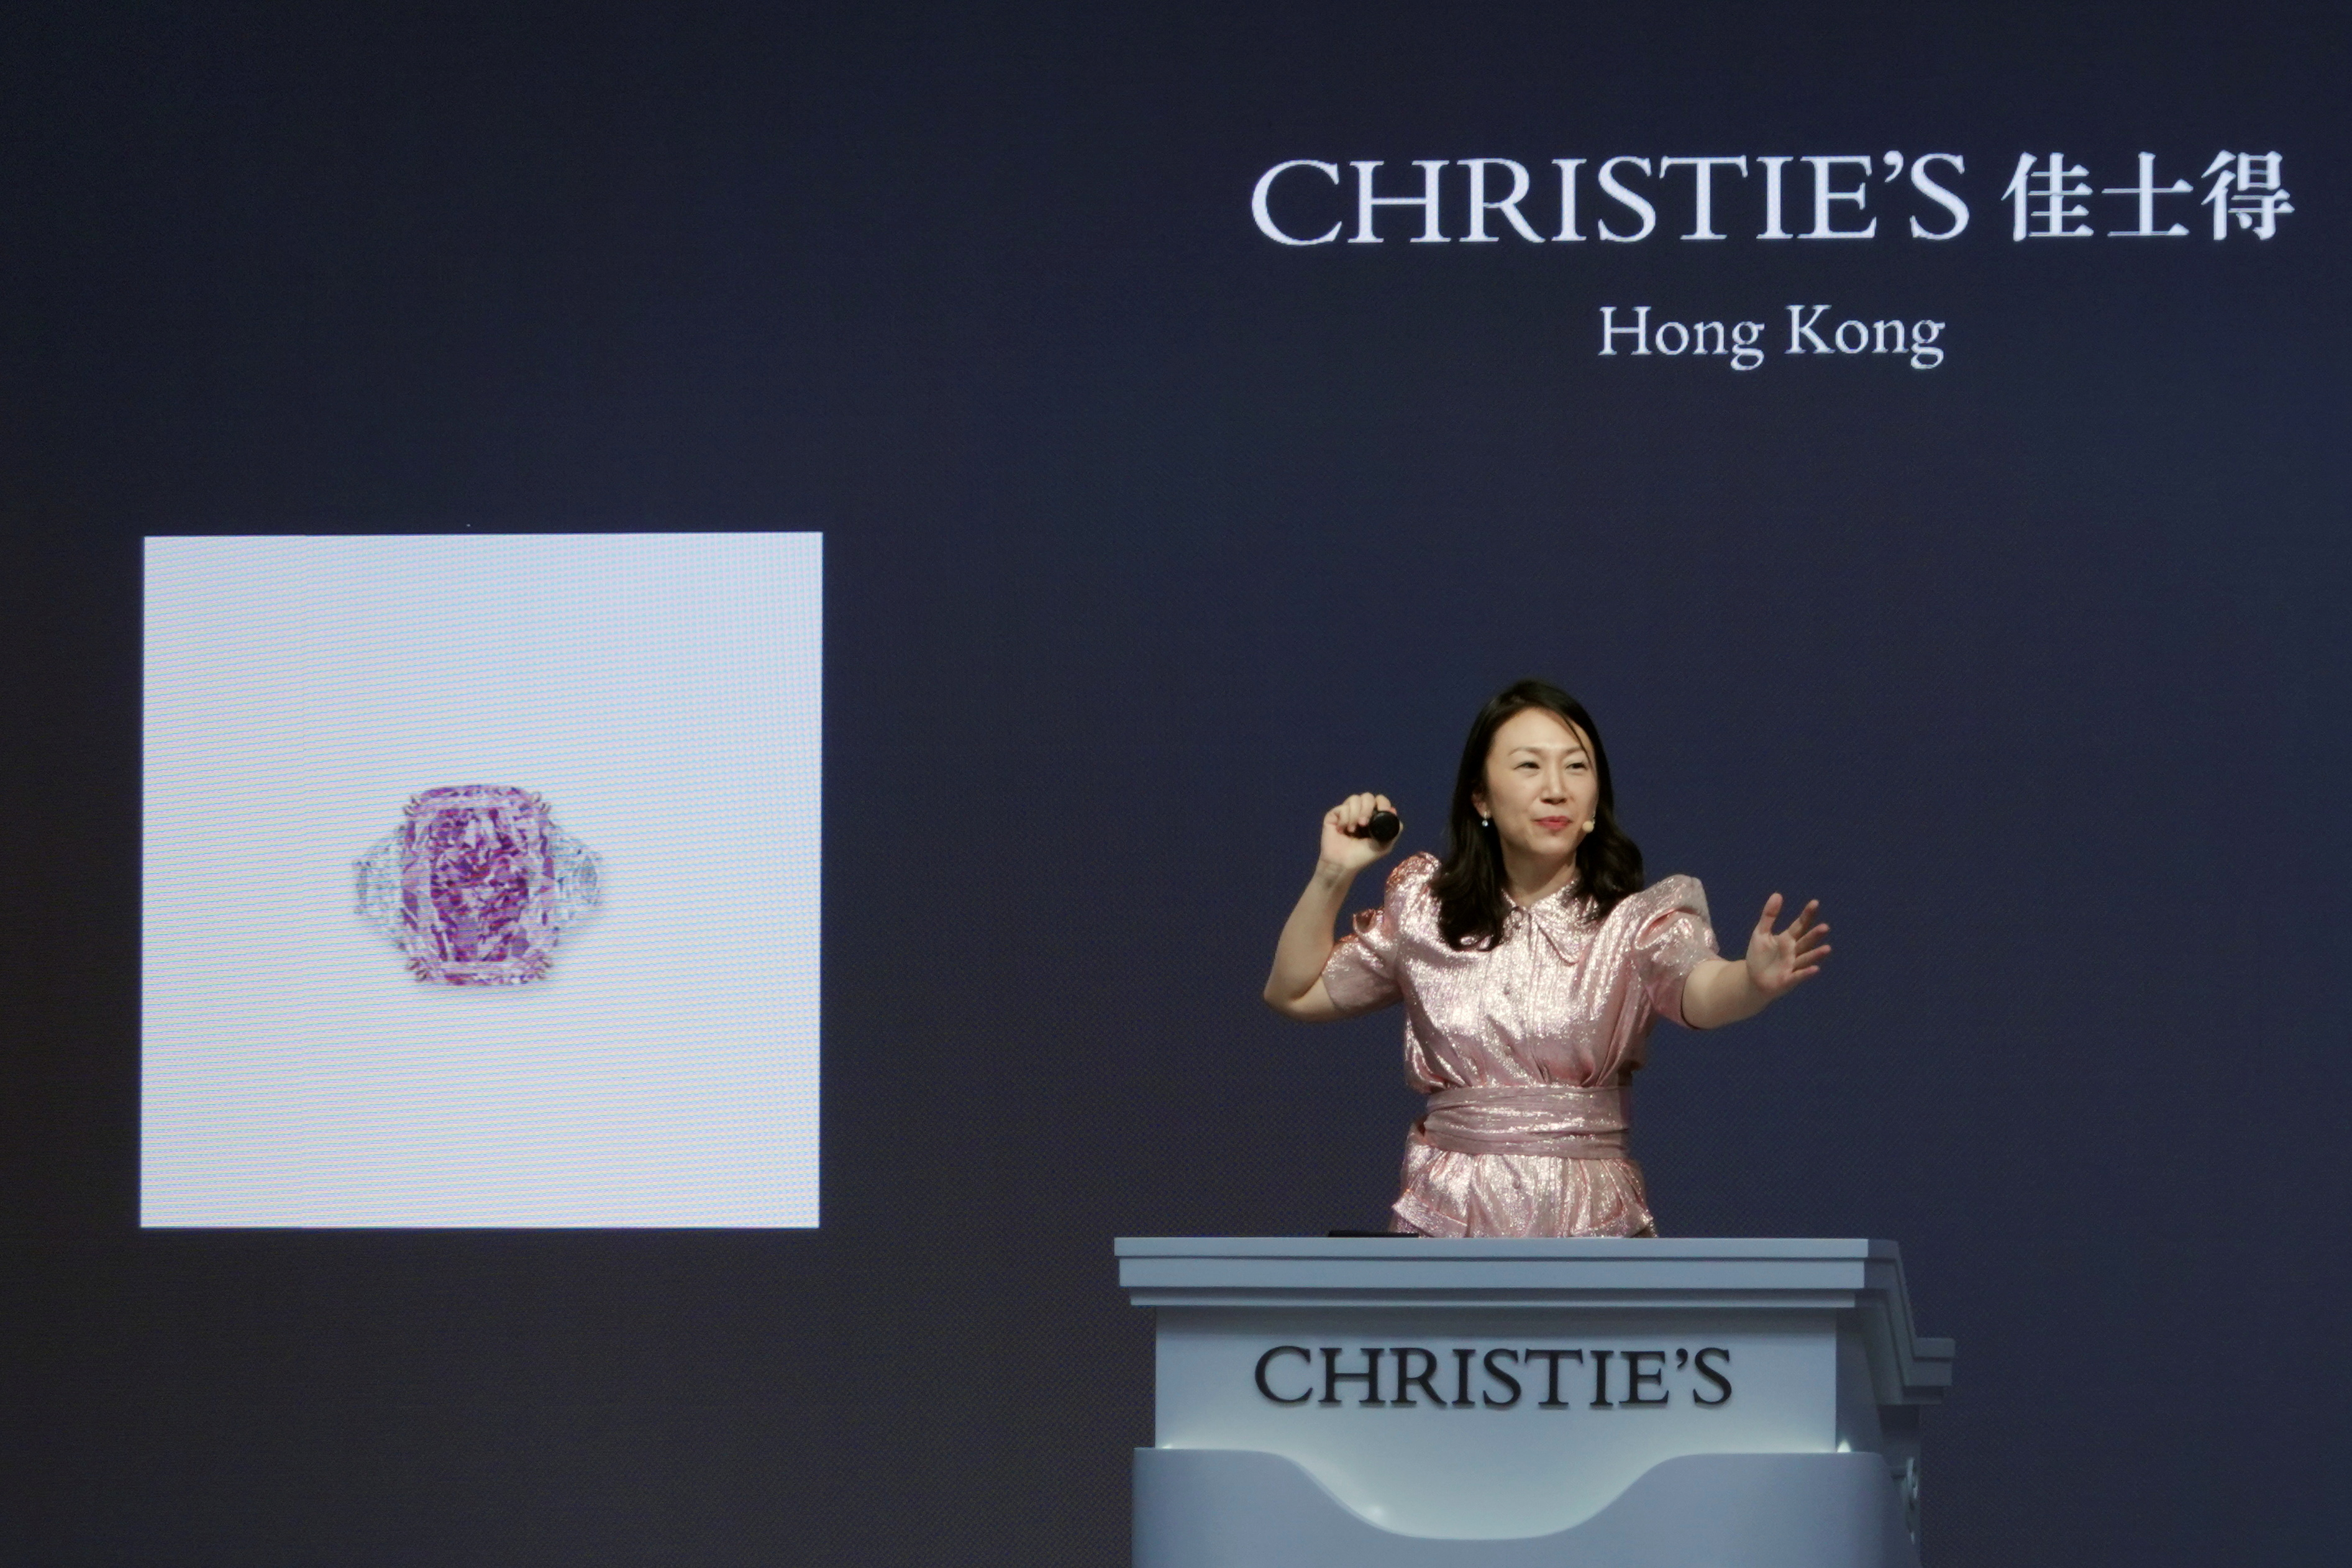 An auctioneer holds the gavel during Christie's auction of Sakura Diamond, a 15.81 carat purple pink diamond ring, in Hong Kong, China May 23, 2021. REUTERS/Joyce Zhou